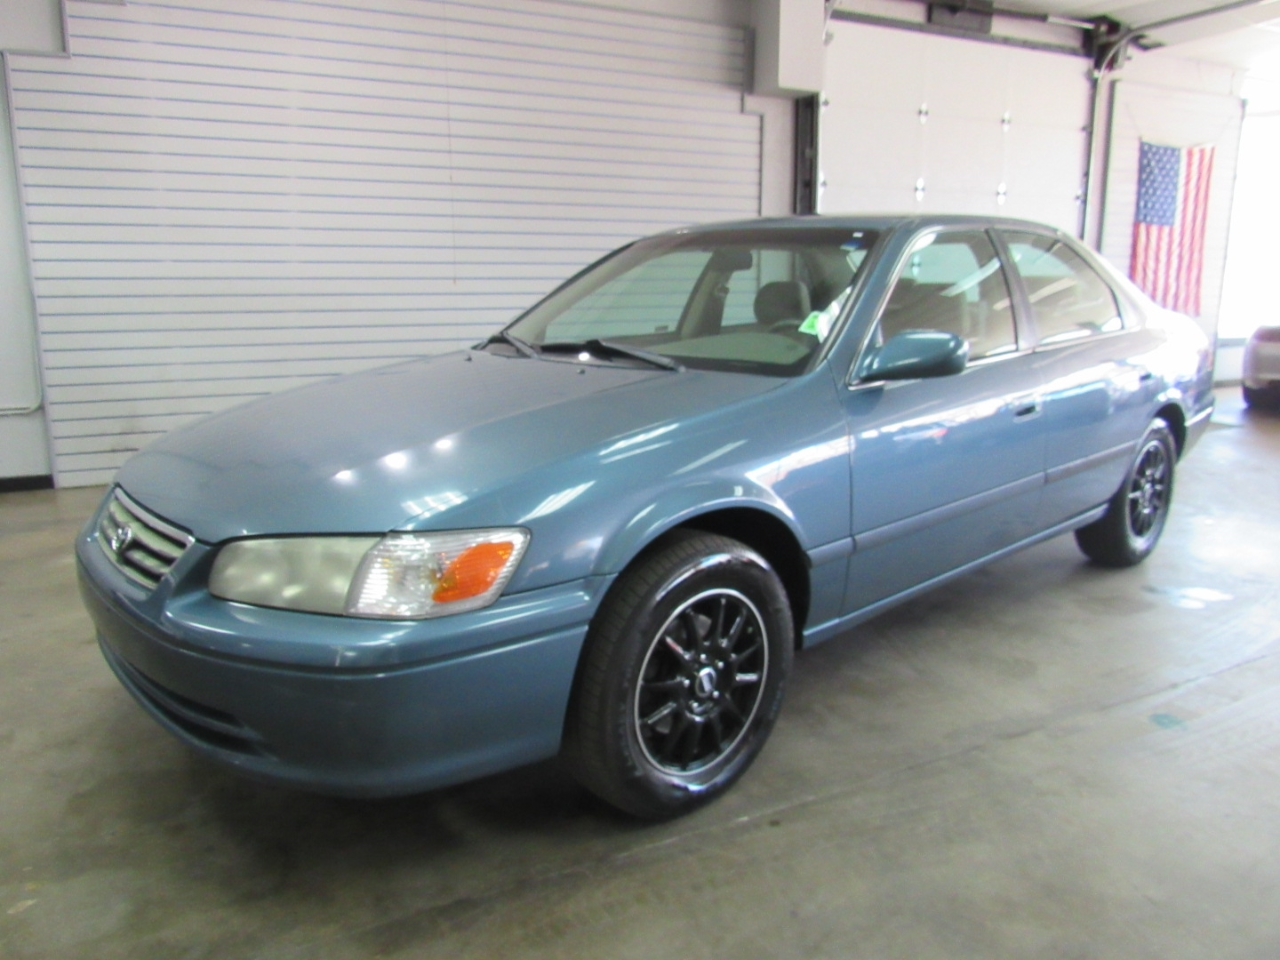 Toyota Camry XLE 2001